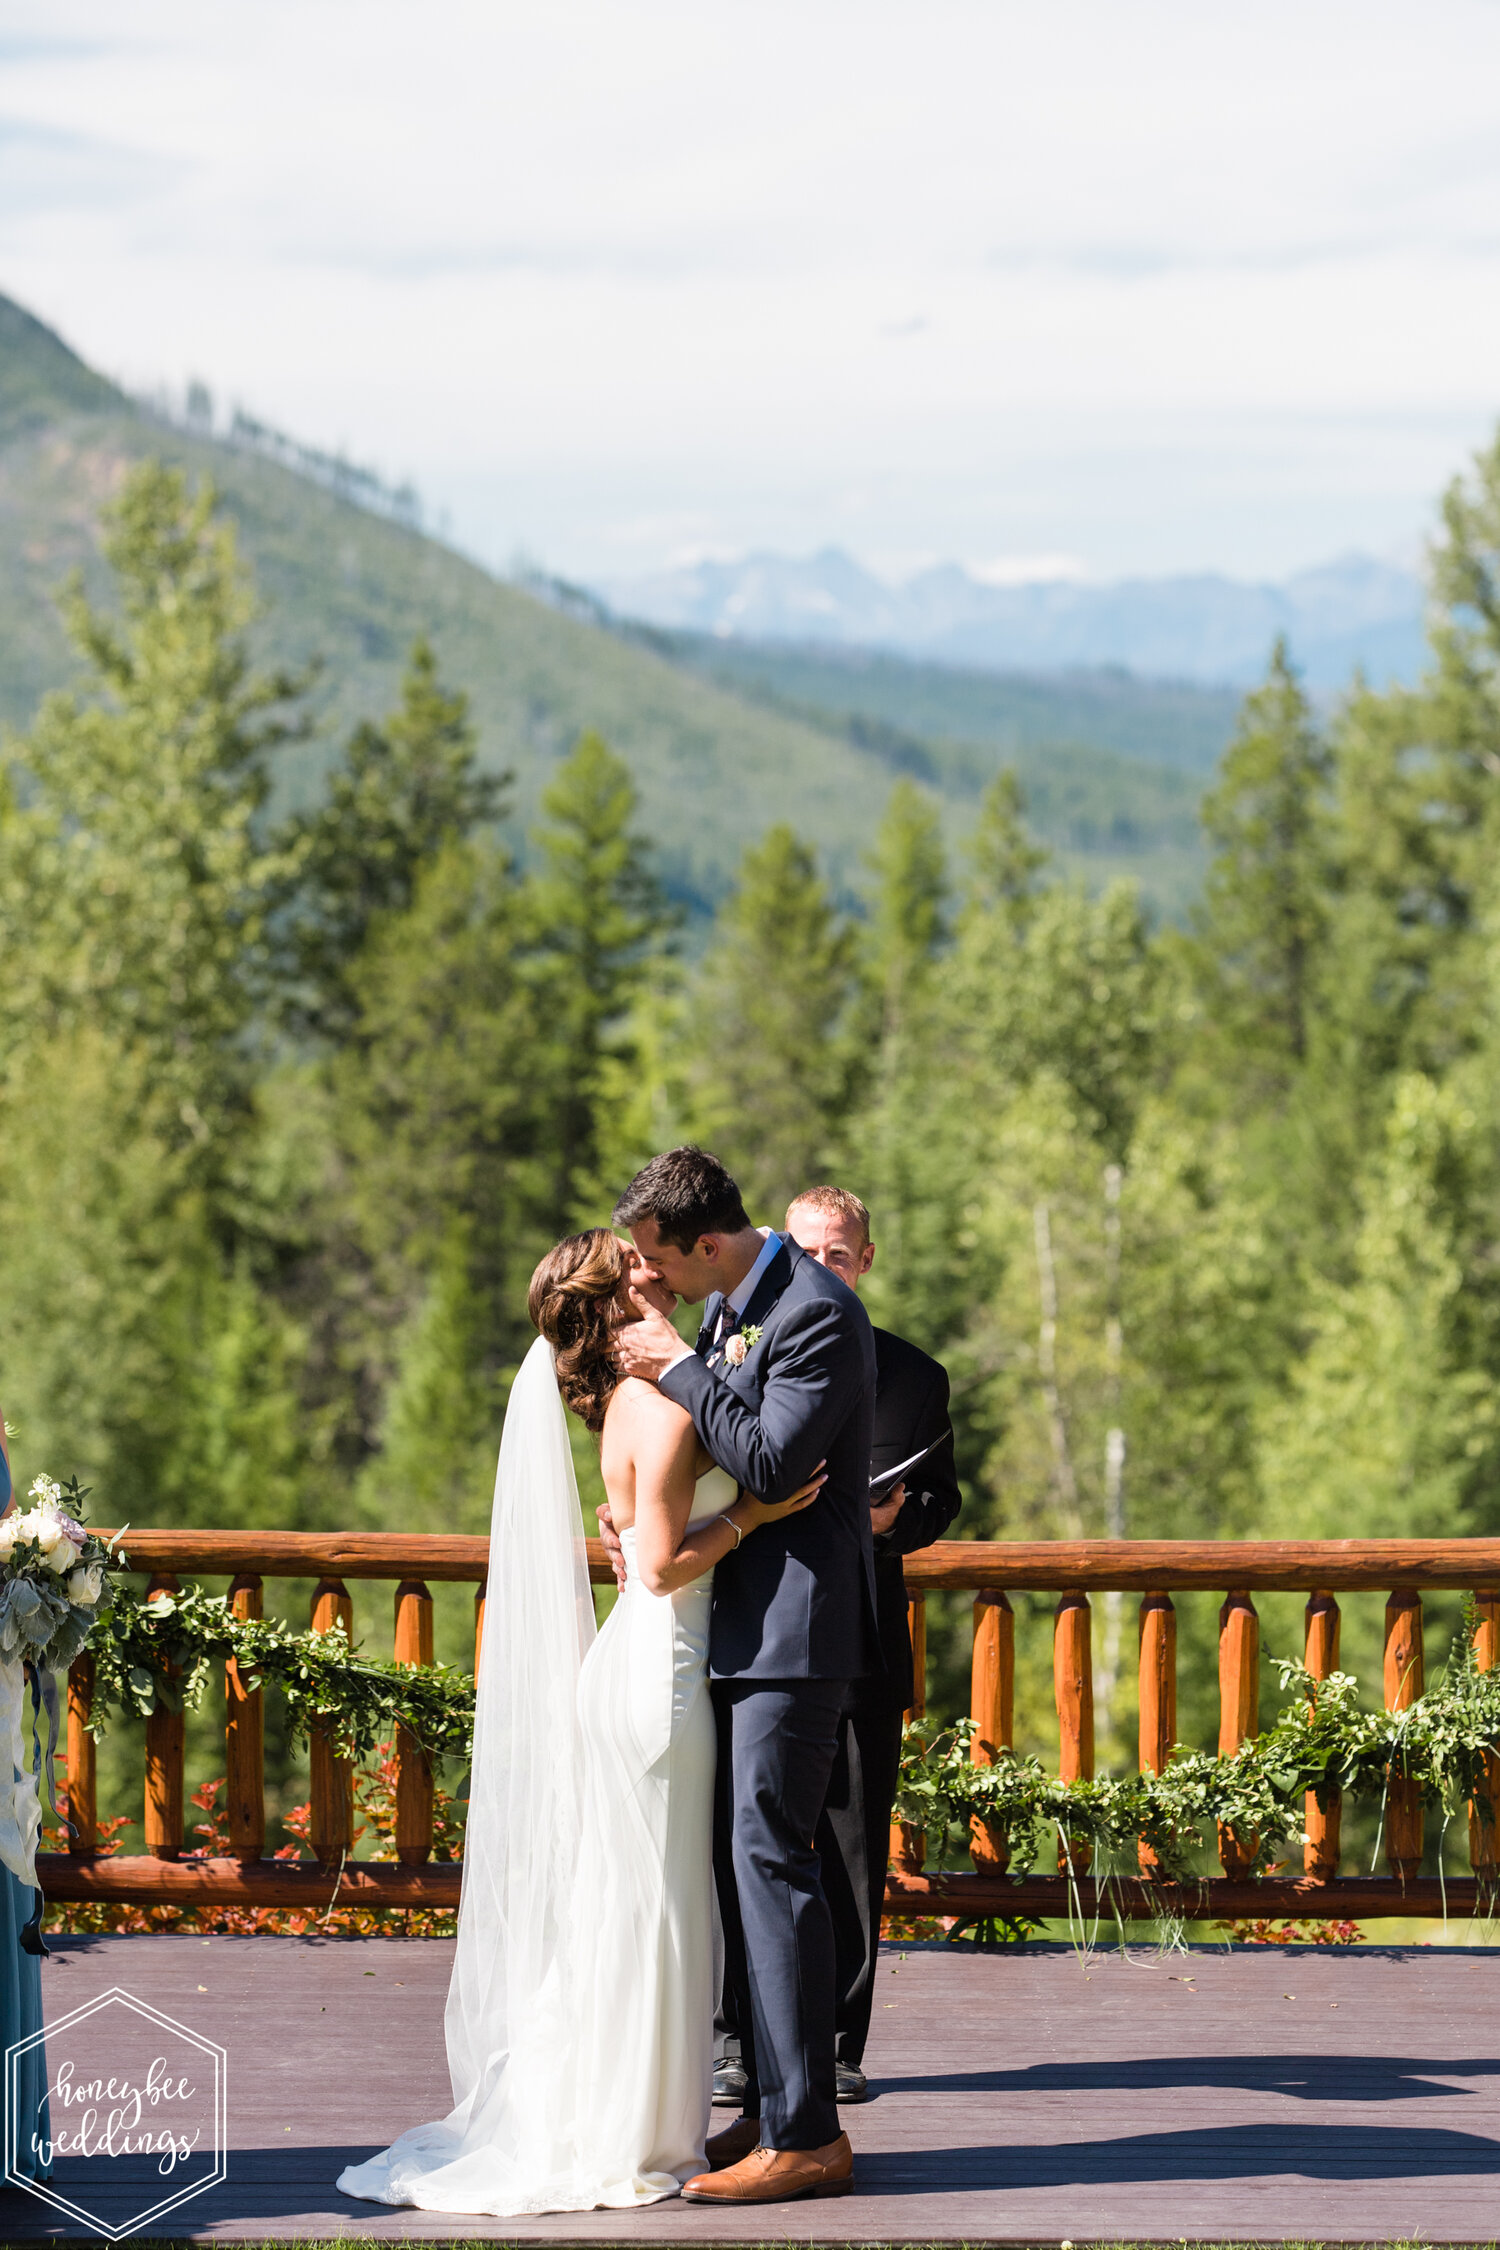 100Glacier National Park Wedding_Glacier Outdoor Center_Honeybee Weddings_Anna & Seth_July 21, 2019-1264.jpg